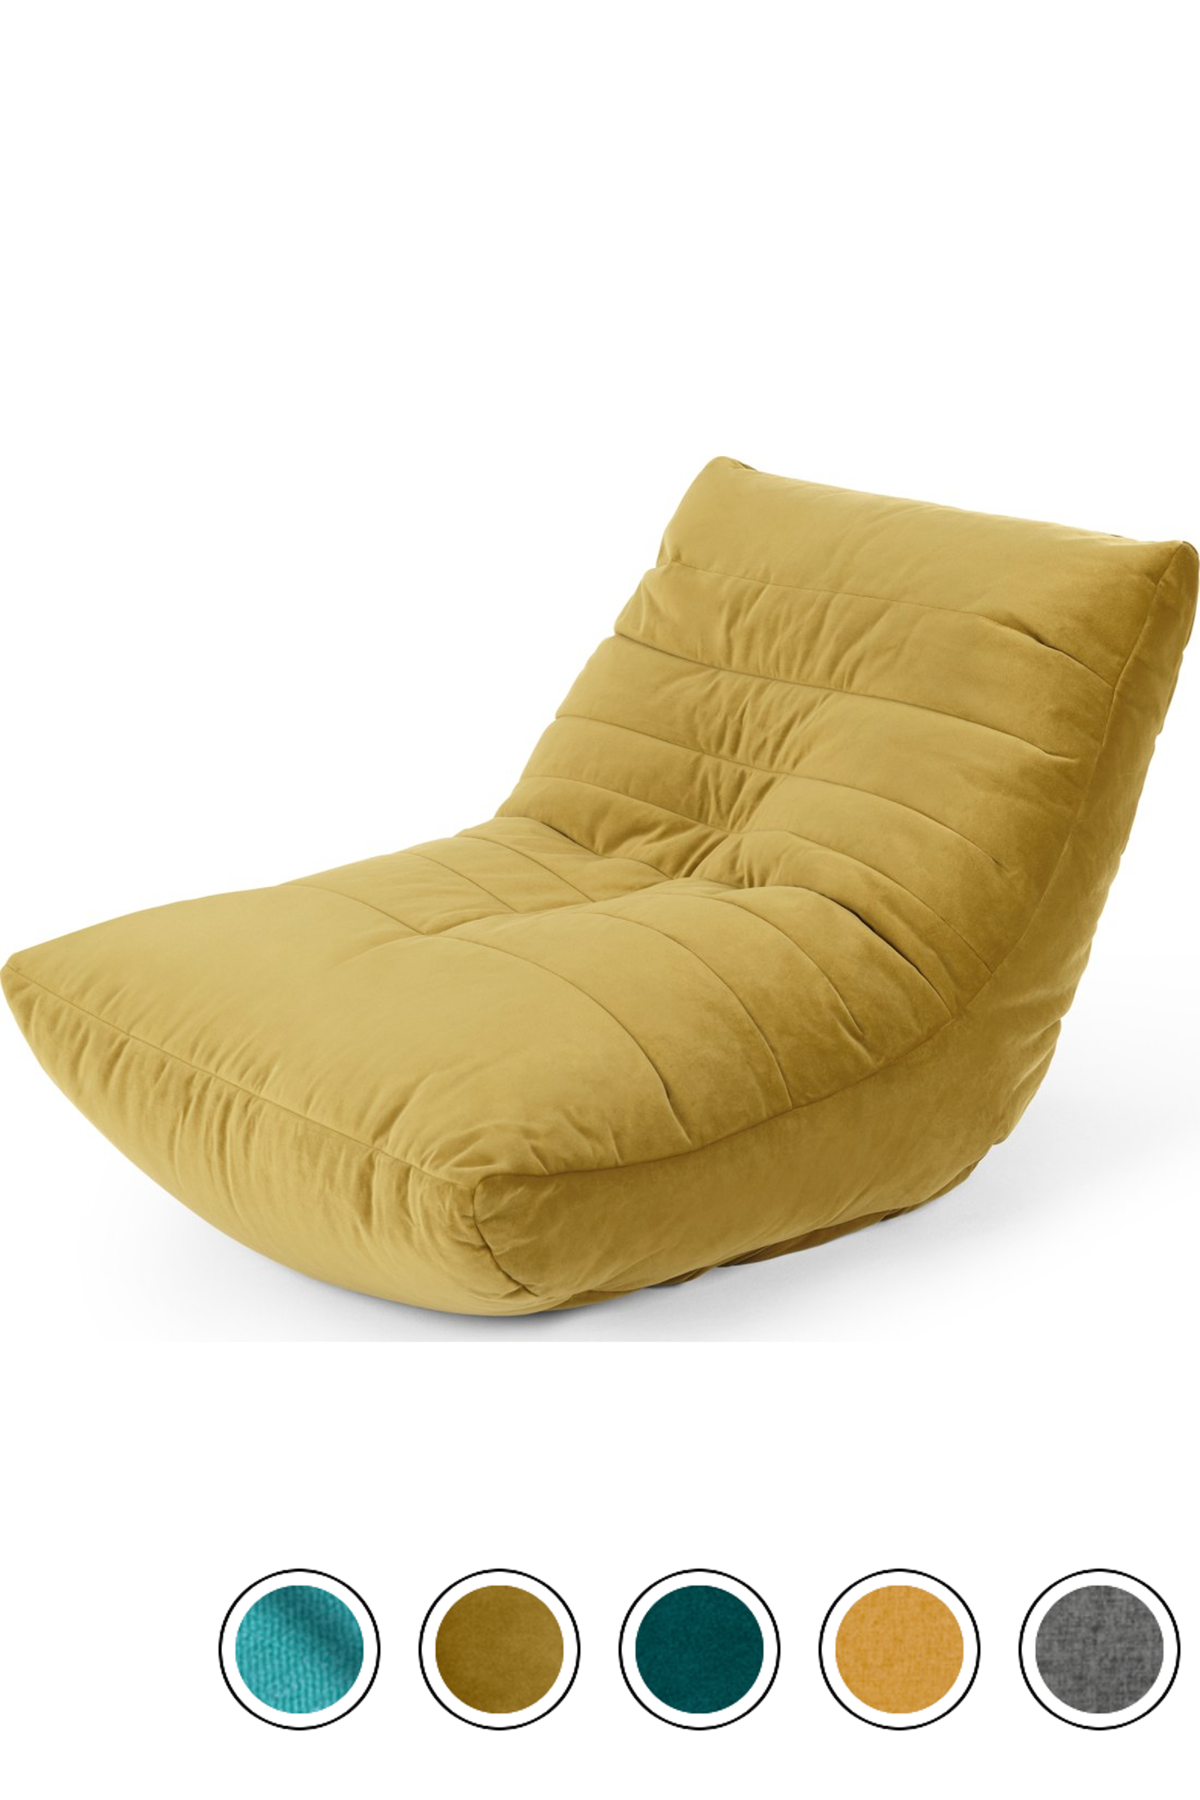 Made Bean Bag Chair Vintage Gold Velvet New Audrie Bean Bags Collection From Made Com Bean Bag Chair Gold Velvet Bean Bag